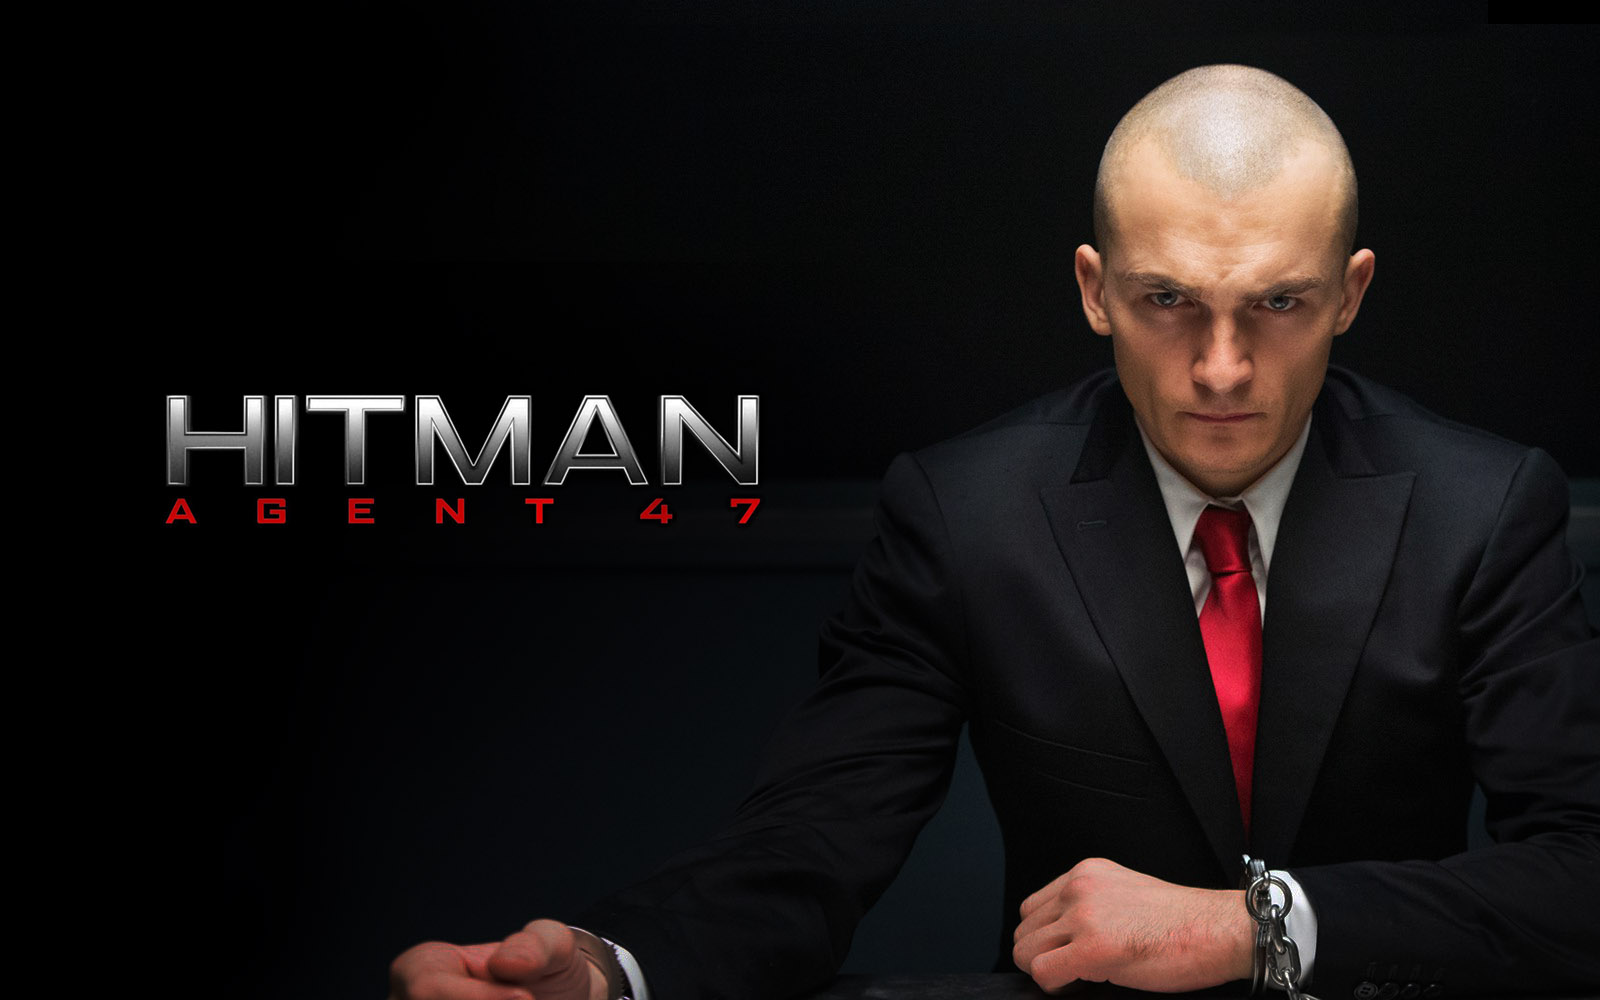 Hitman Agent 47 Entertainment Talk